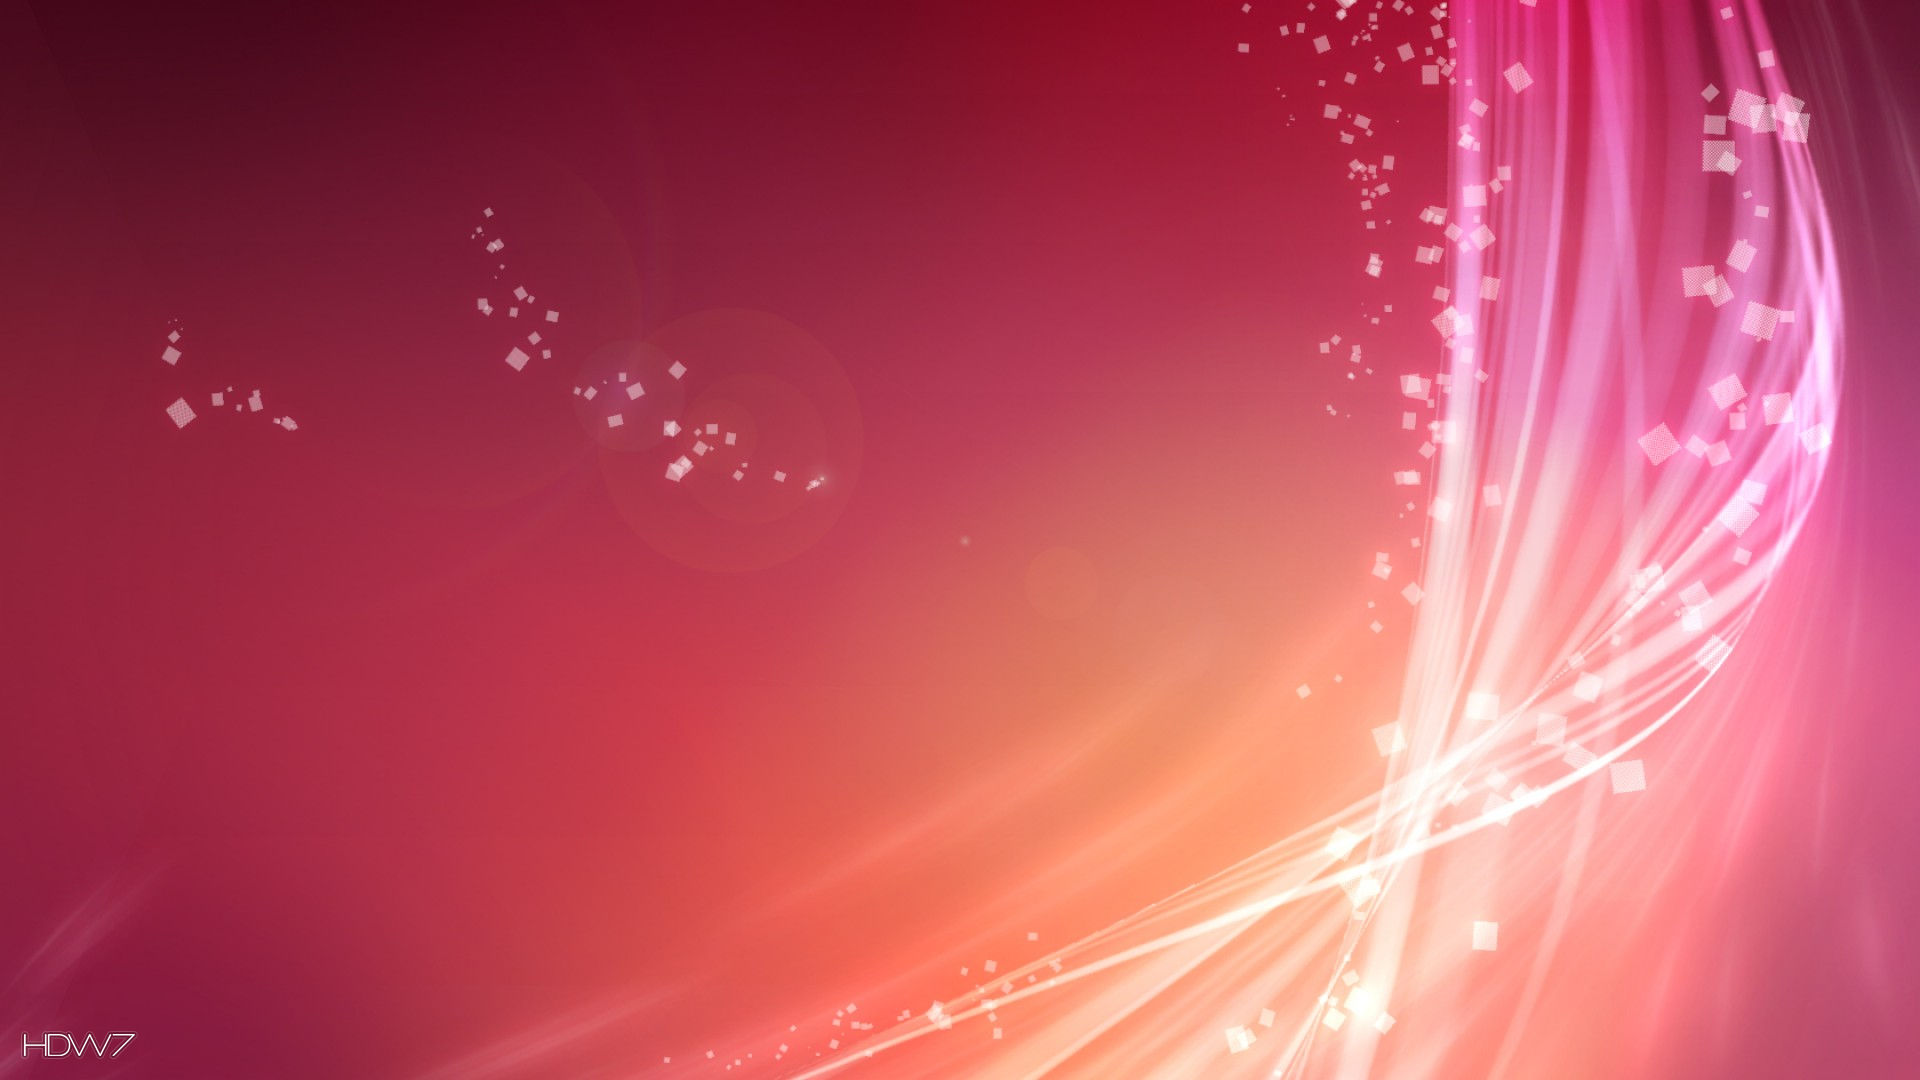 Abstract Pink Pastel Wallpaper 1080p Hd Wallpaper 1080p